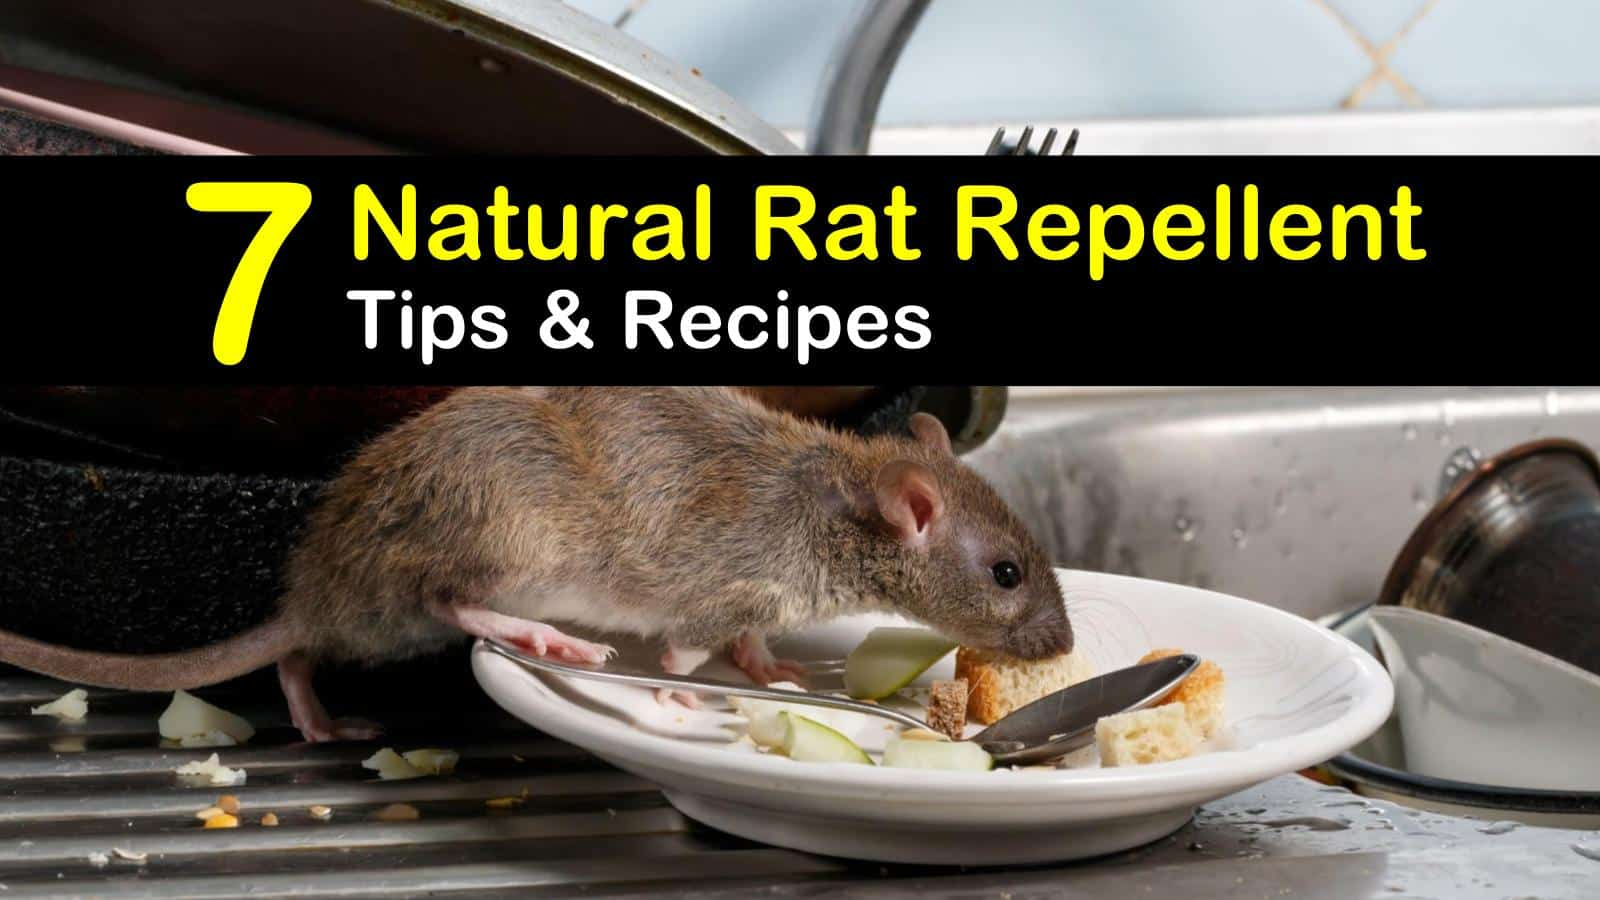 natural rat repellent titleimg1